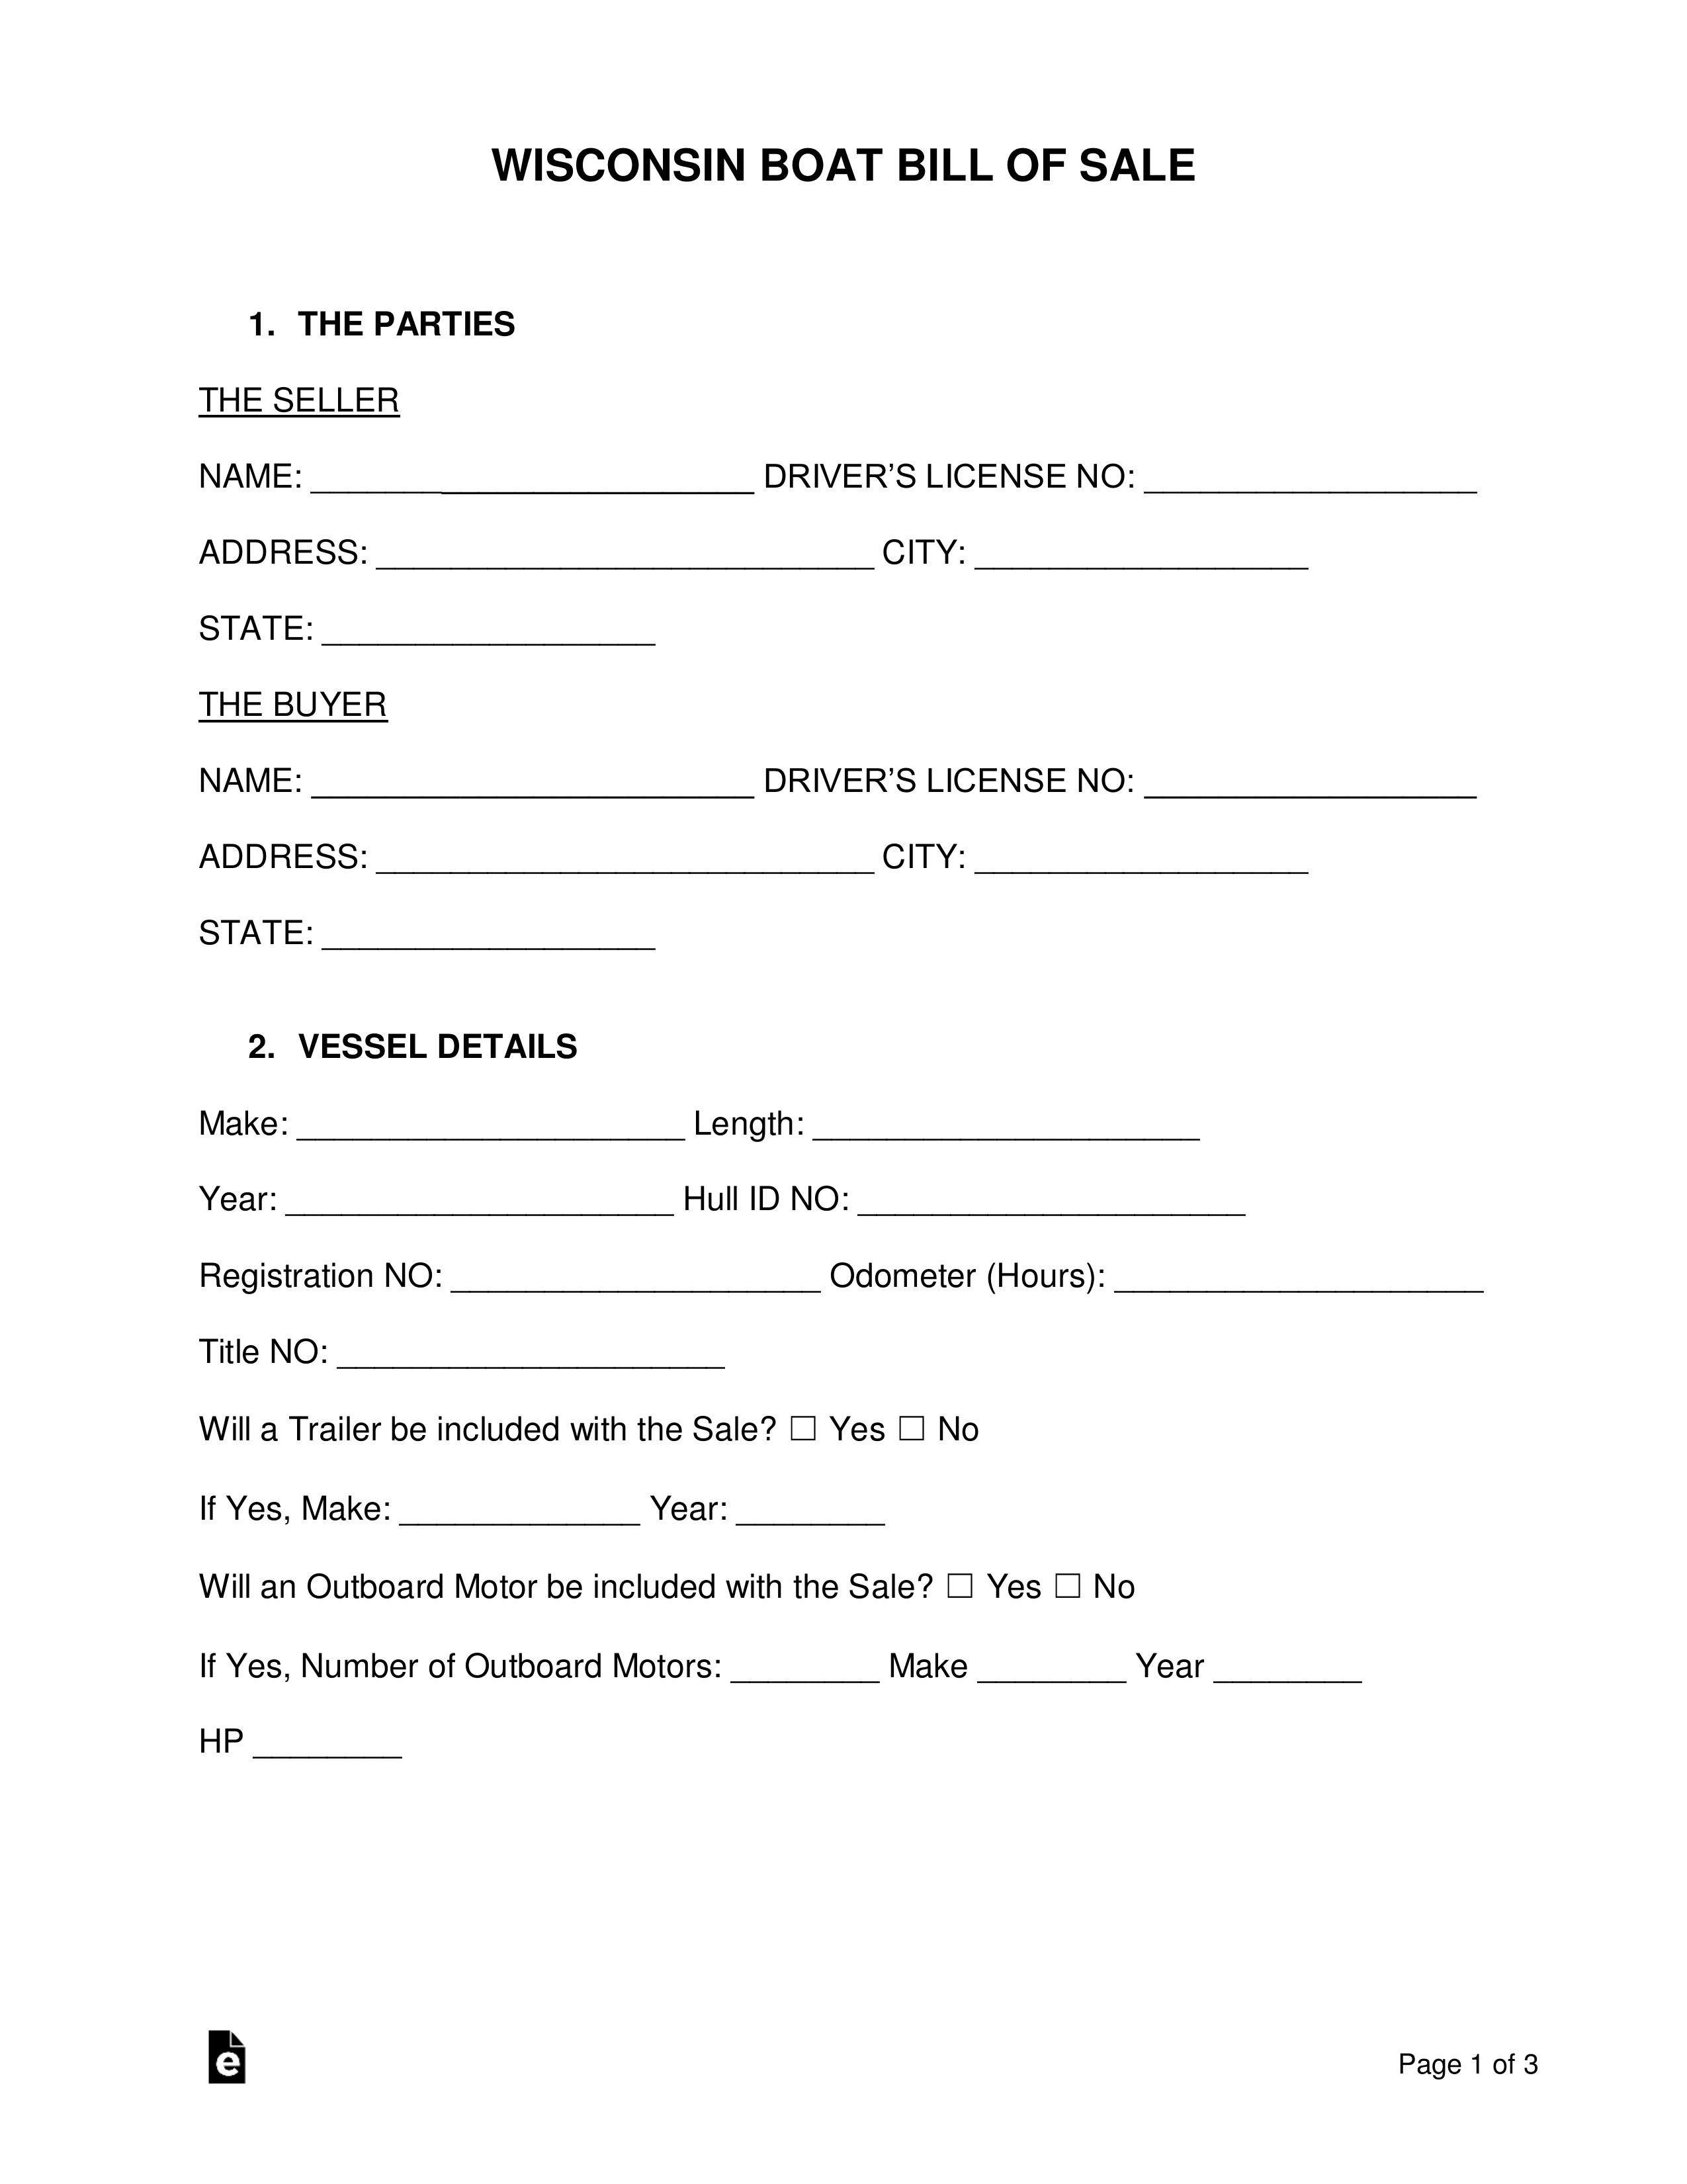 Free Wisconsin Boat Bill Of Sale Form - Word | Pdf | Eforms